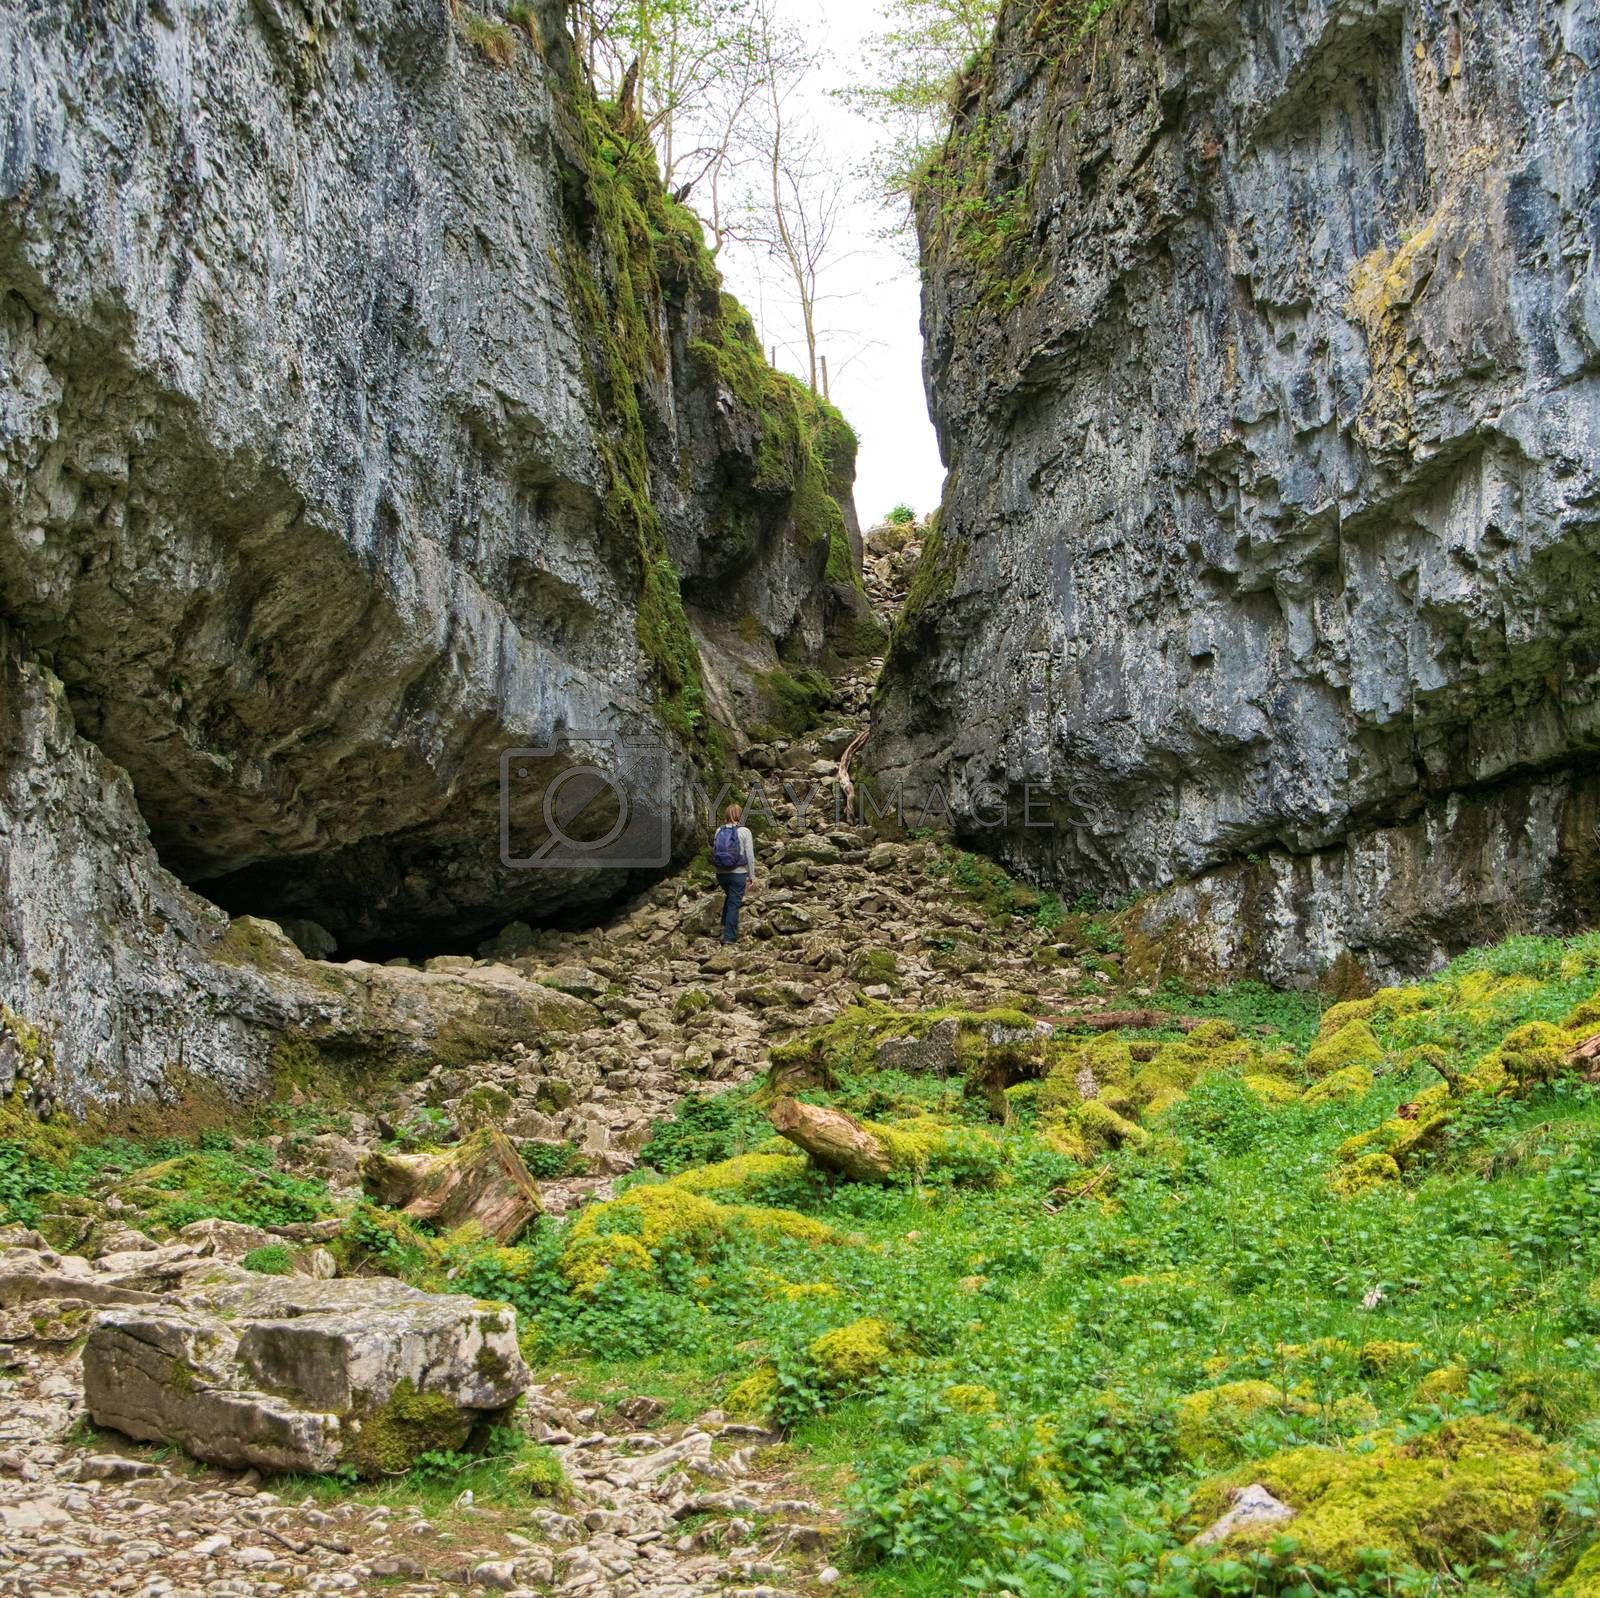 A walker looks up at Trow Gill, a meltwater gorge near Clapham in the Yorkshire Dales, UK